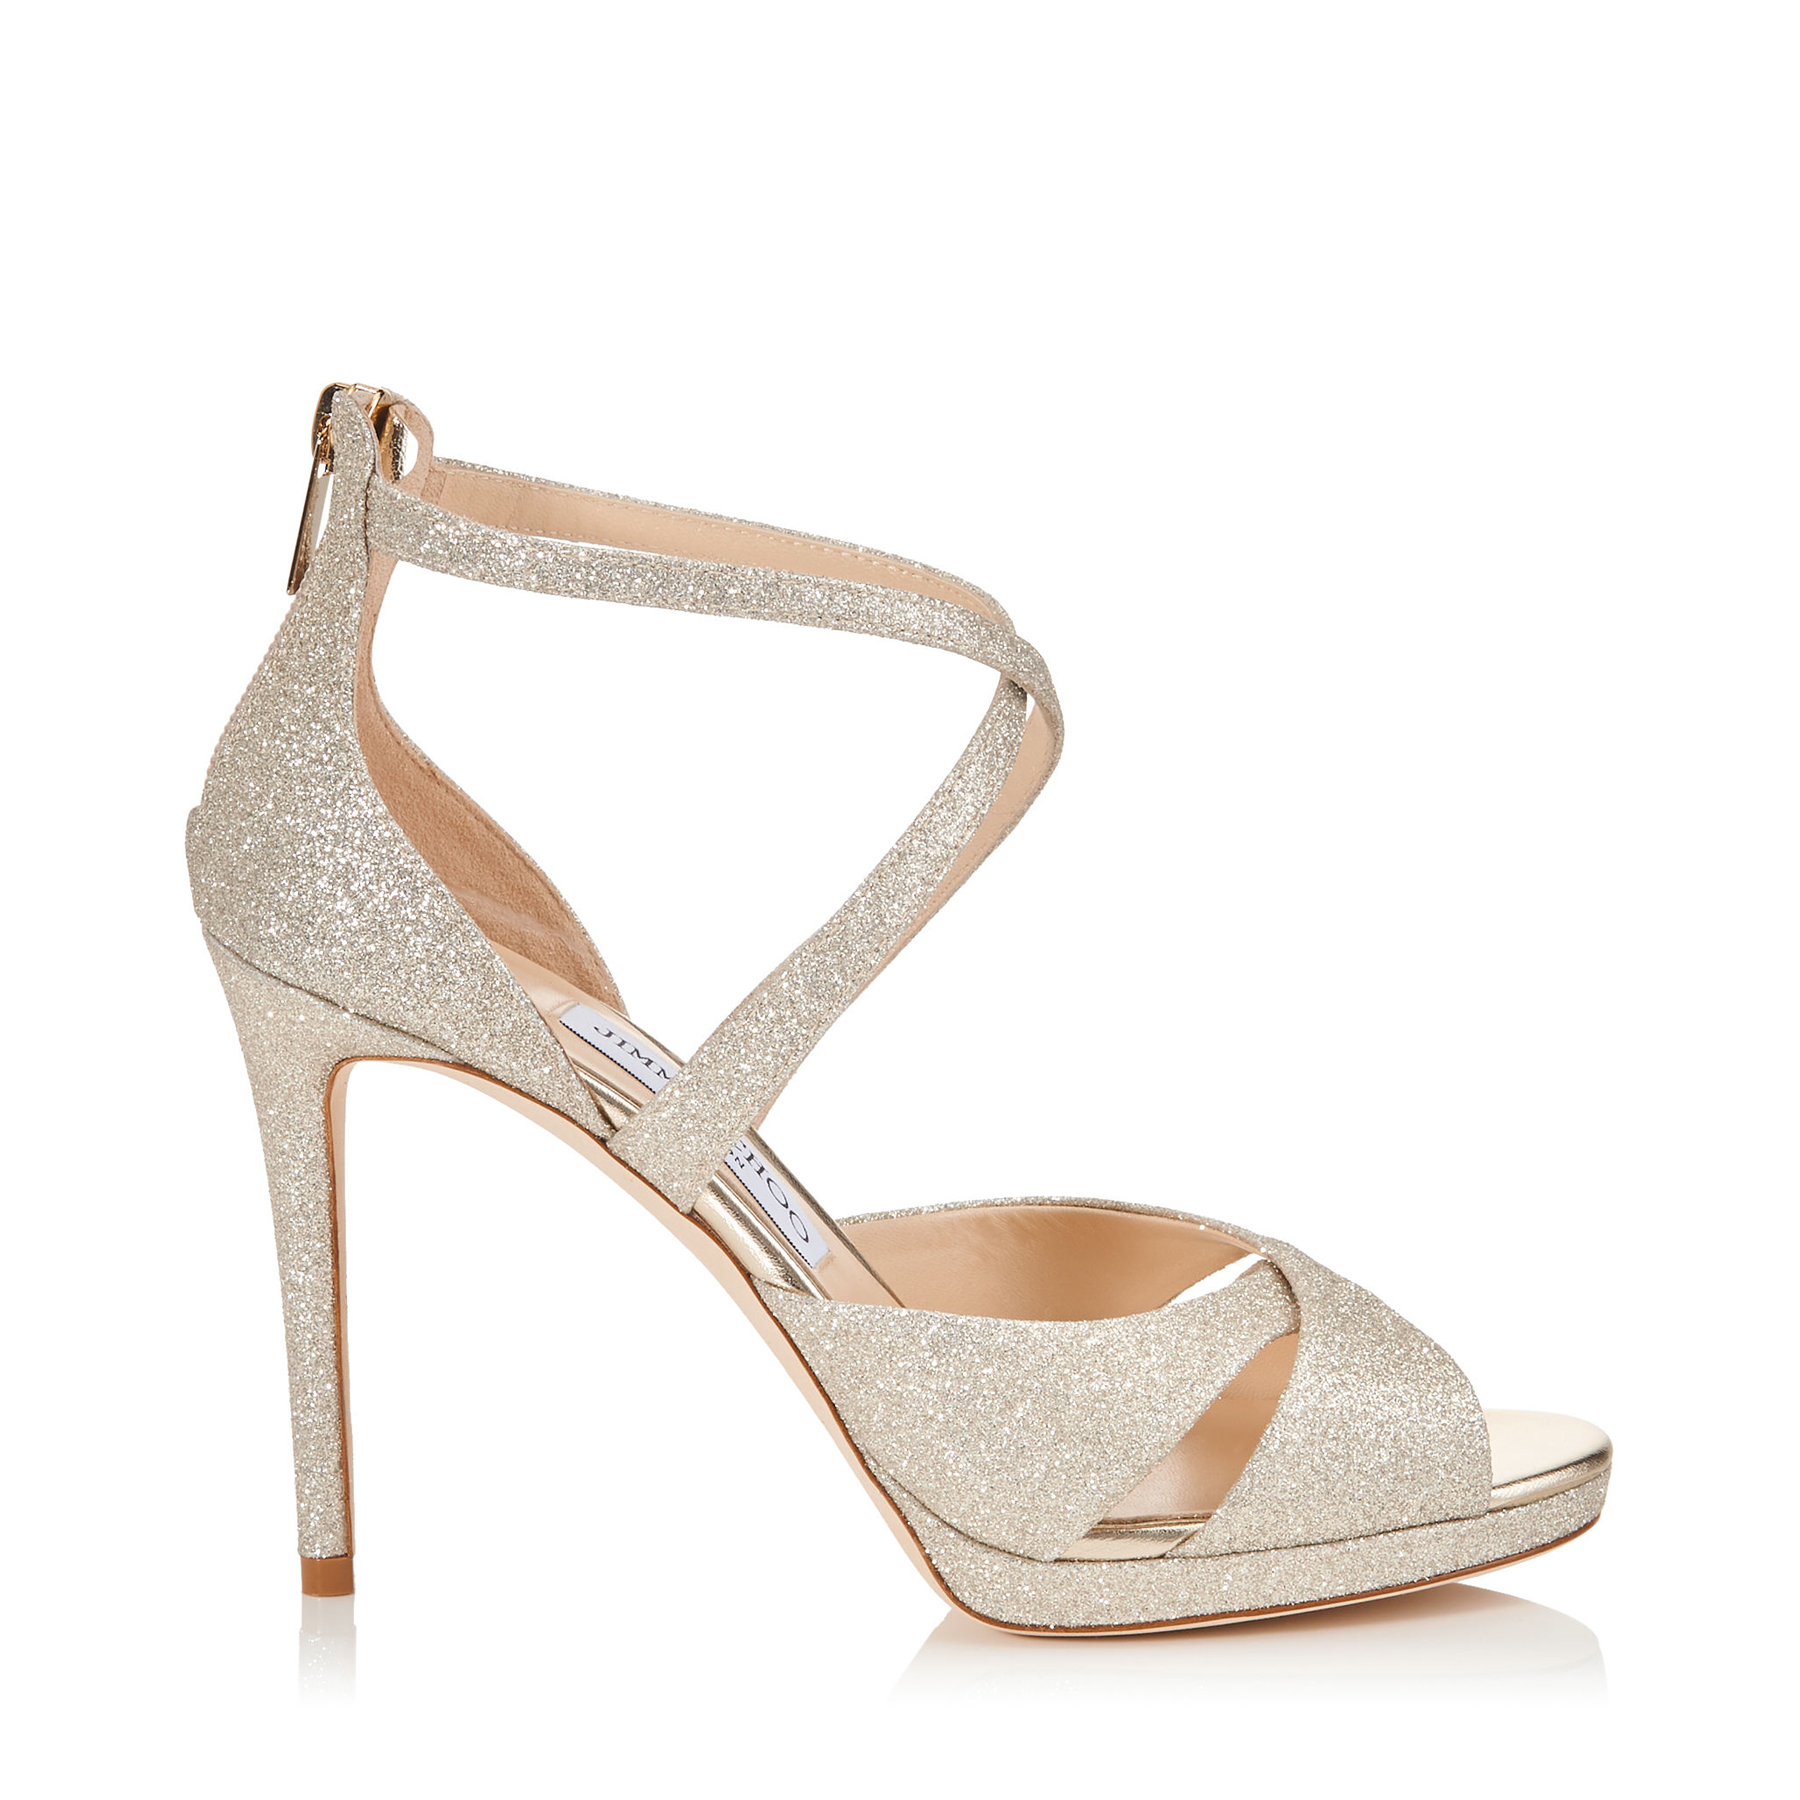 LORINA 100 Platinum Ice Dusty Glitter Sandals by Jimmy Choo